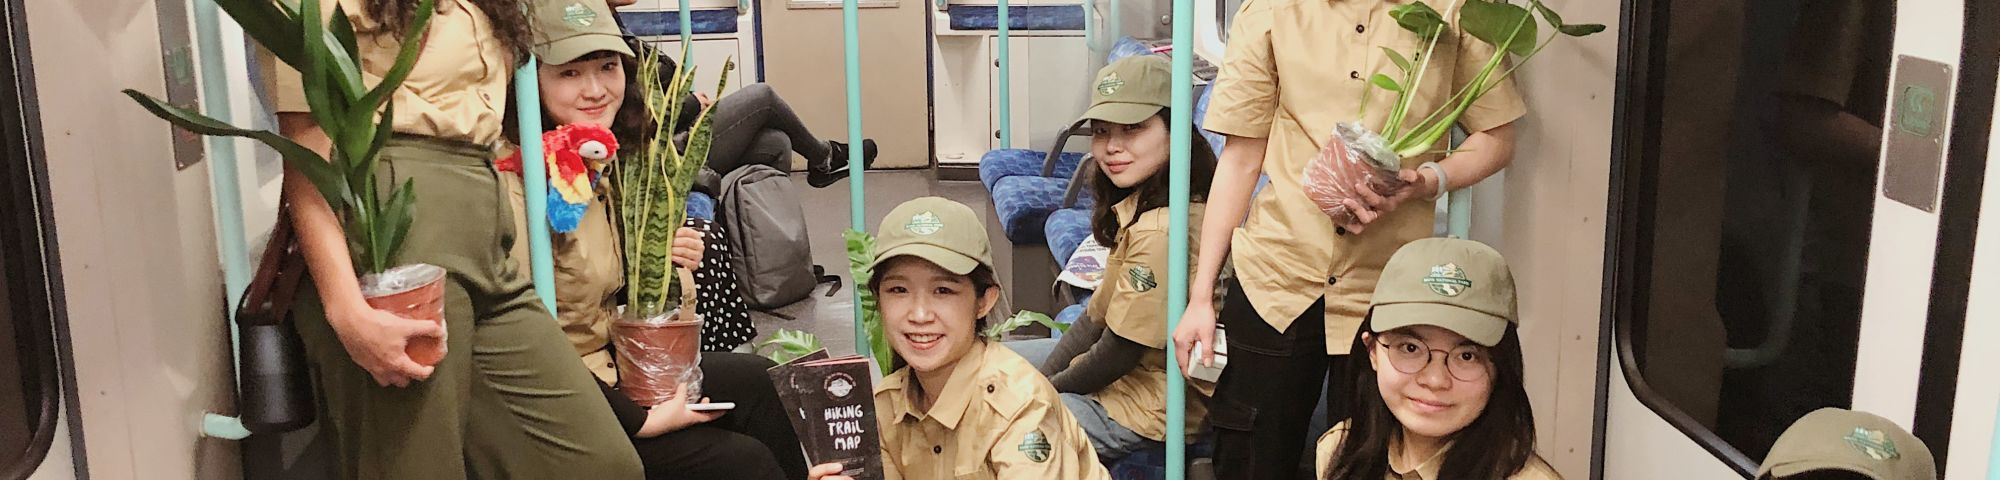 A group of students dressed as park rangers hold otted plants on a tude train